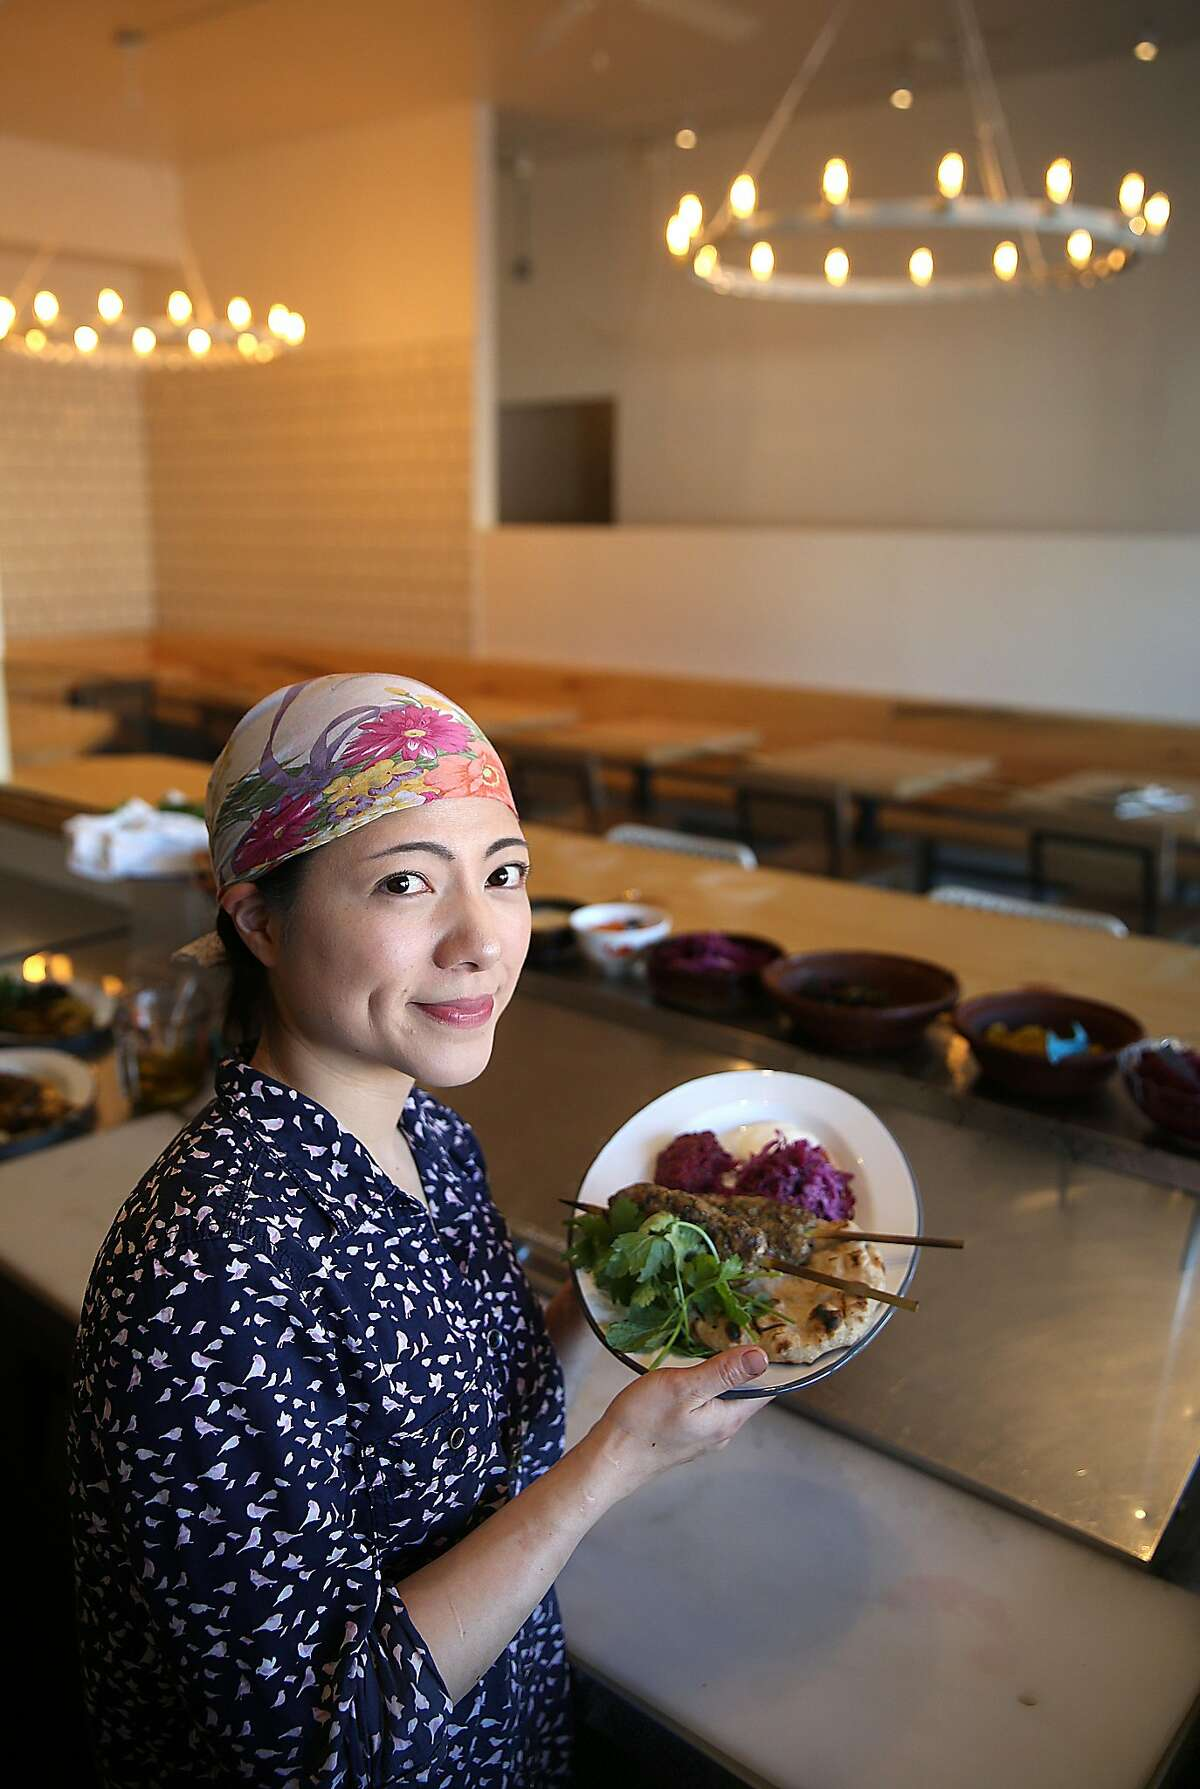 Chef Traci Matsumoto-Esteban shows a plate of lamb kebabs on grilled flatbread with mashed beets, sauerkraut salad, pickled chiles, and strained yogurt at the Kebabery on Tuesday, February 28, 2017, in Oakland, Calif.